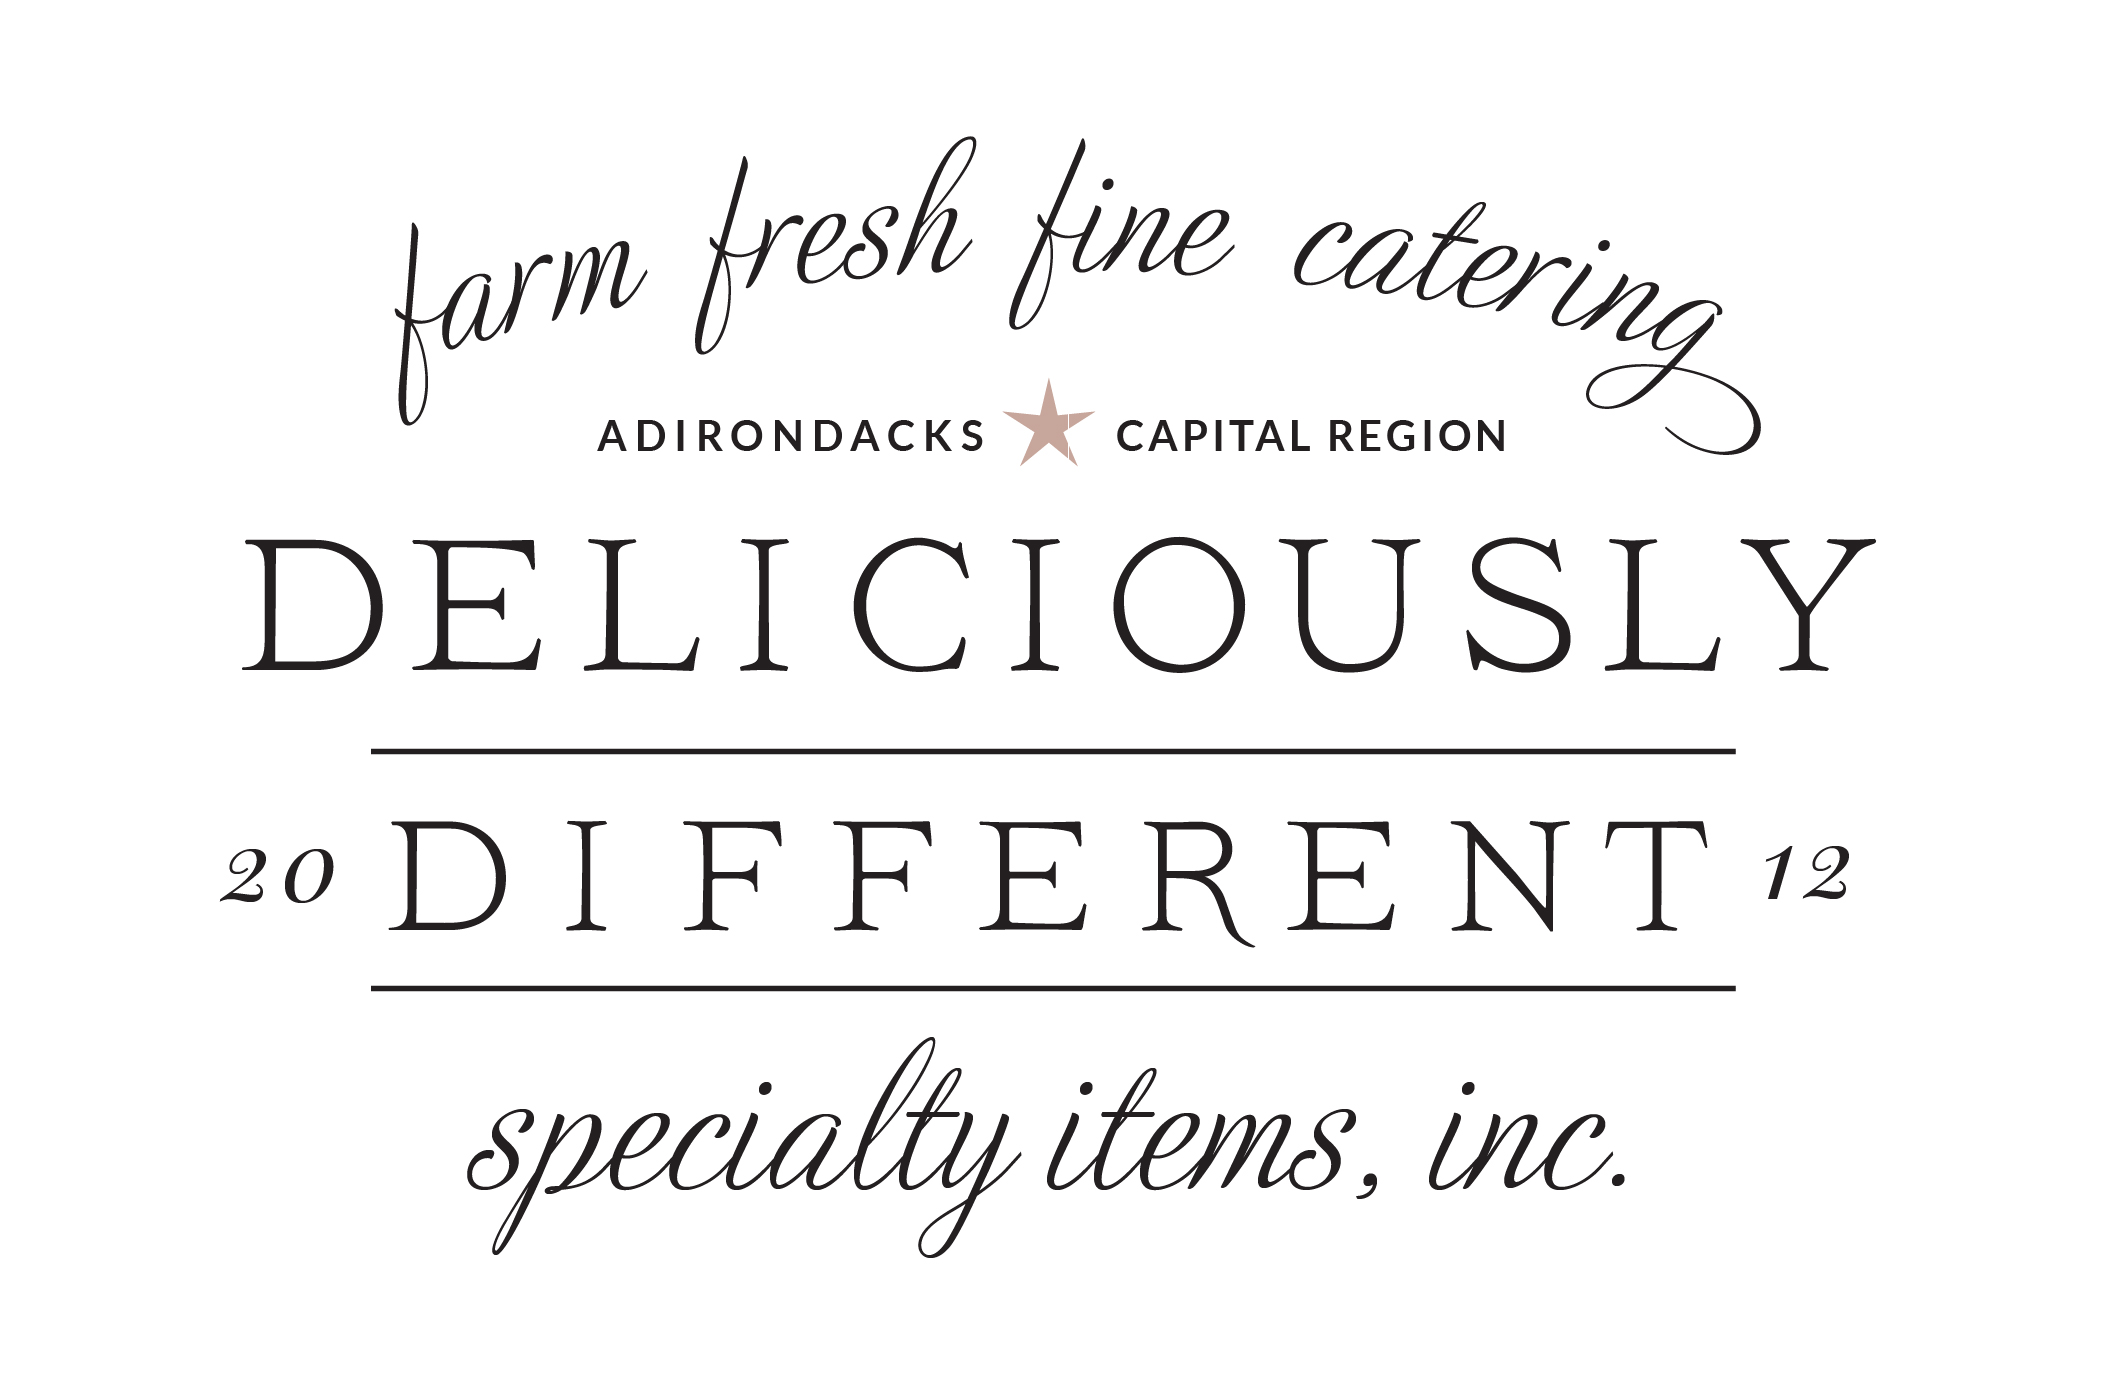 Deliciously Different saratoga new york wedding event caterer